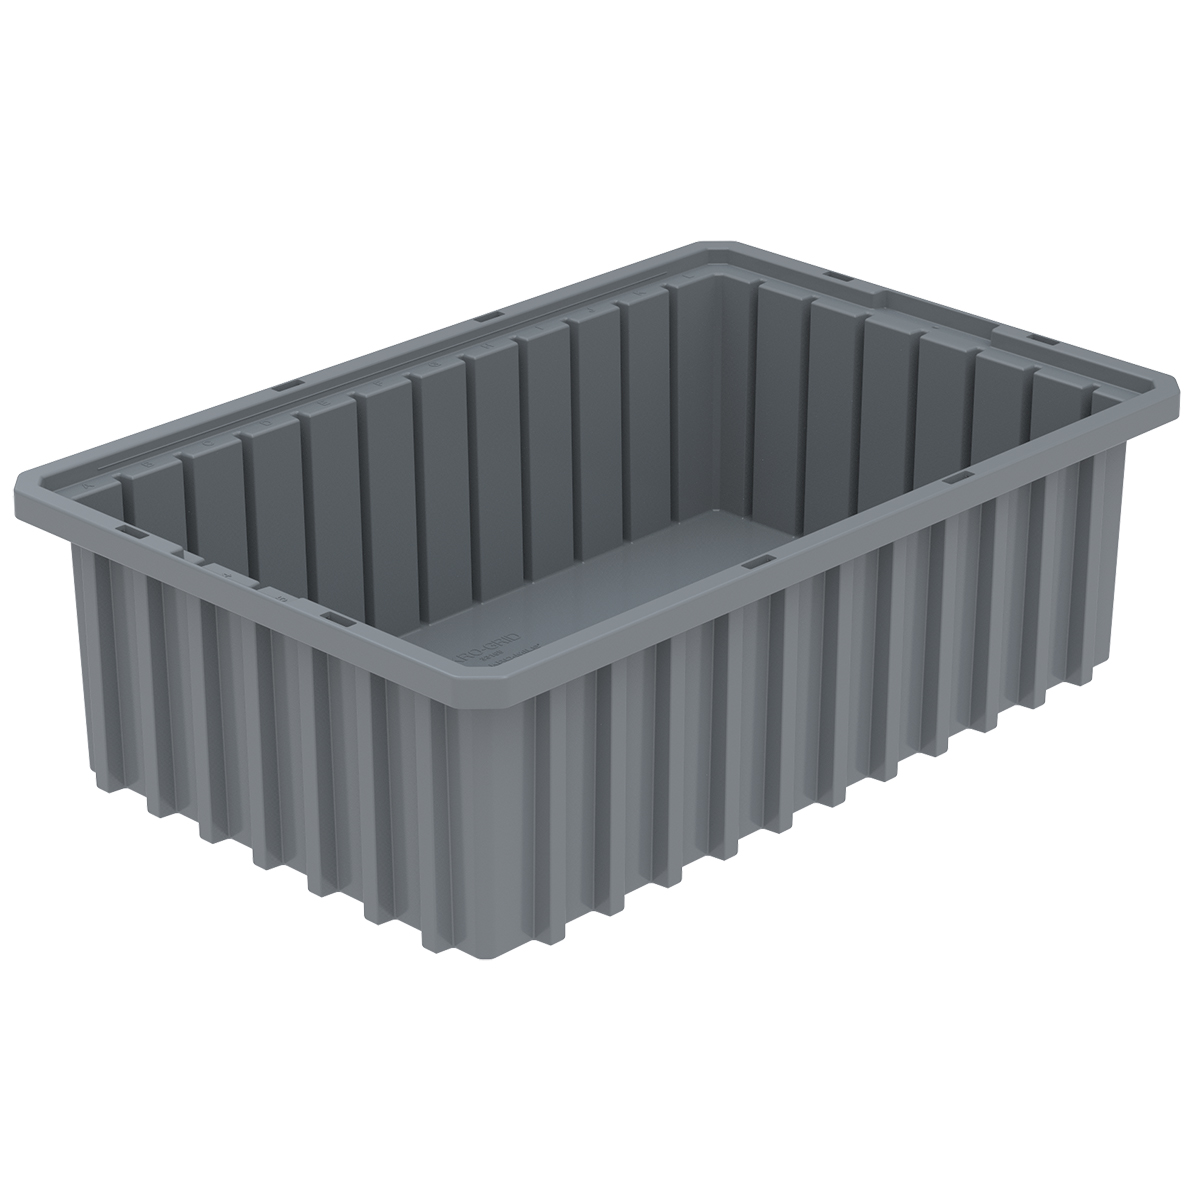 Akro-Grid Dividable Box 16-1/2 x 10-7/8 x 5, Gray.  This item sold in carton quantities of 12.